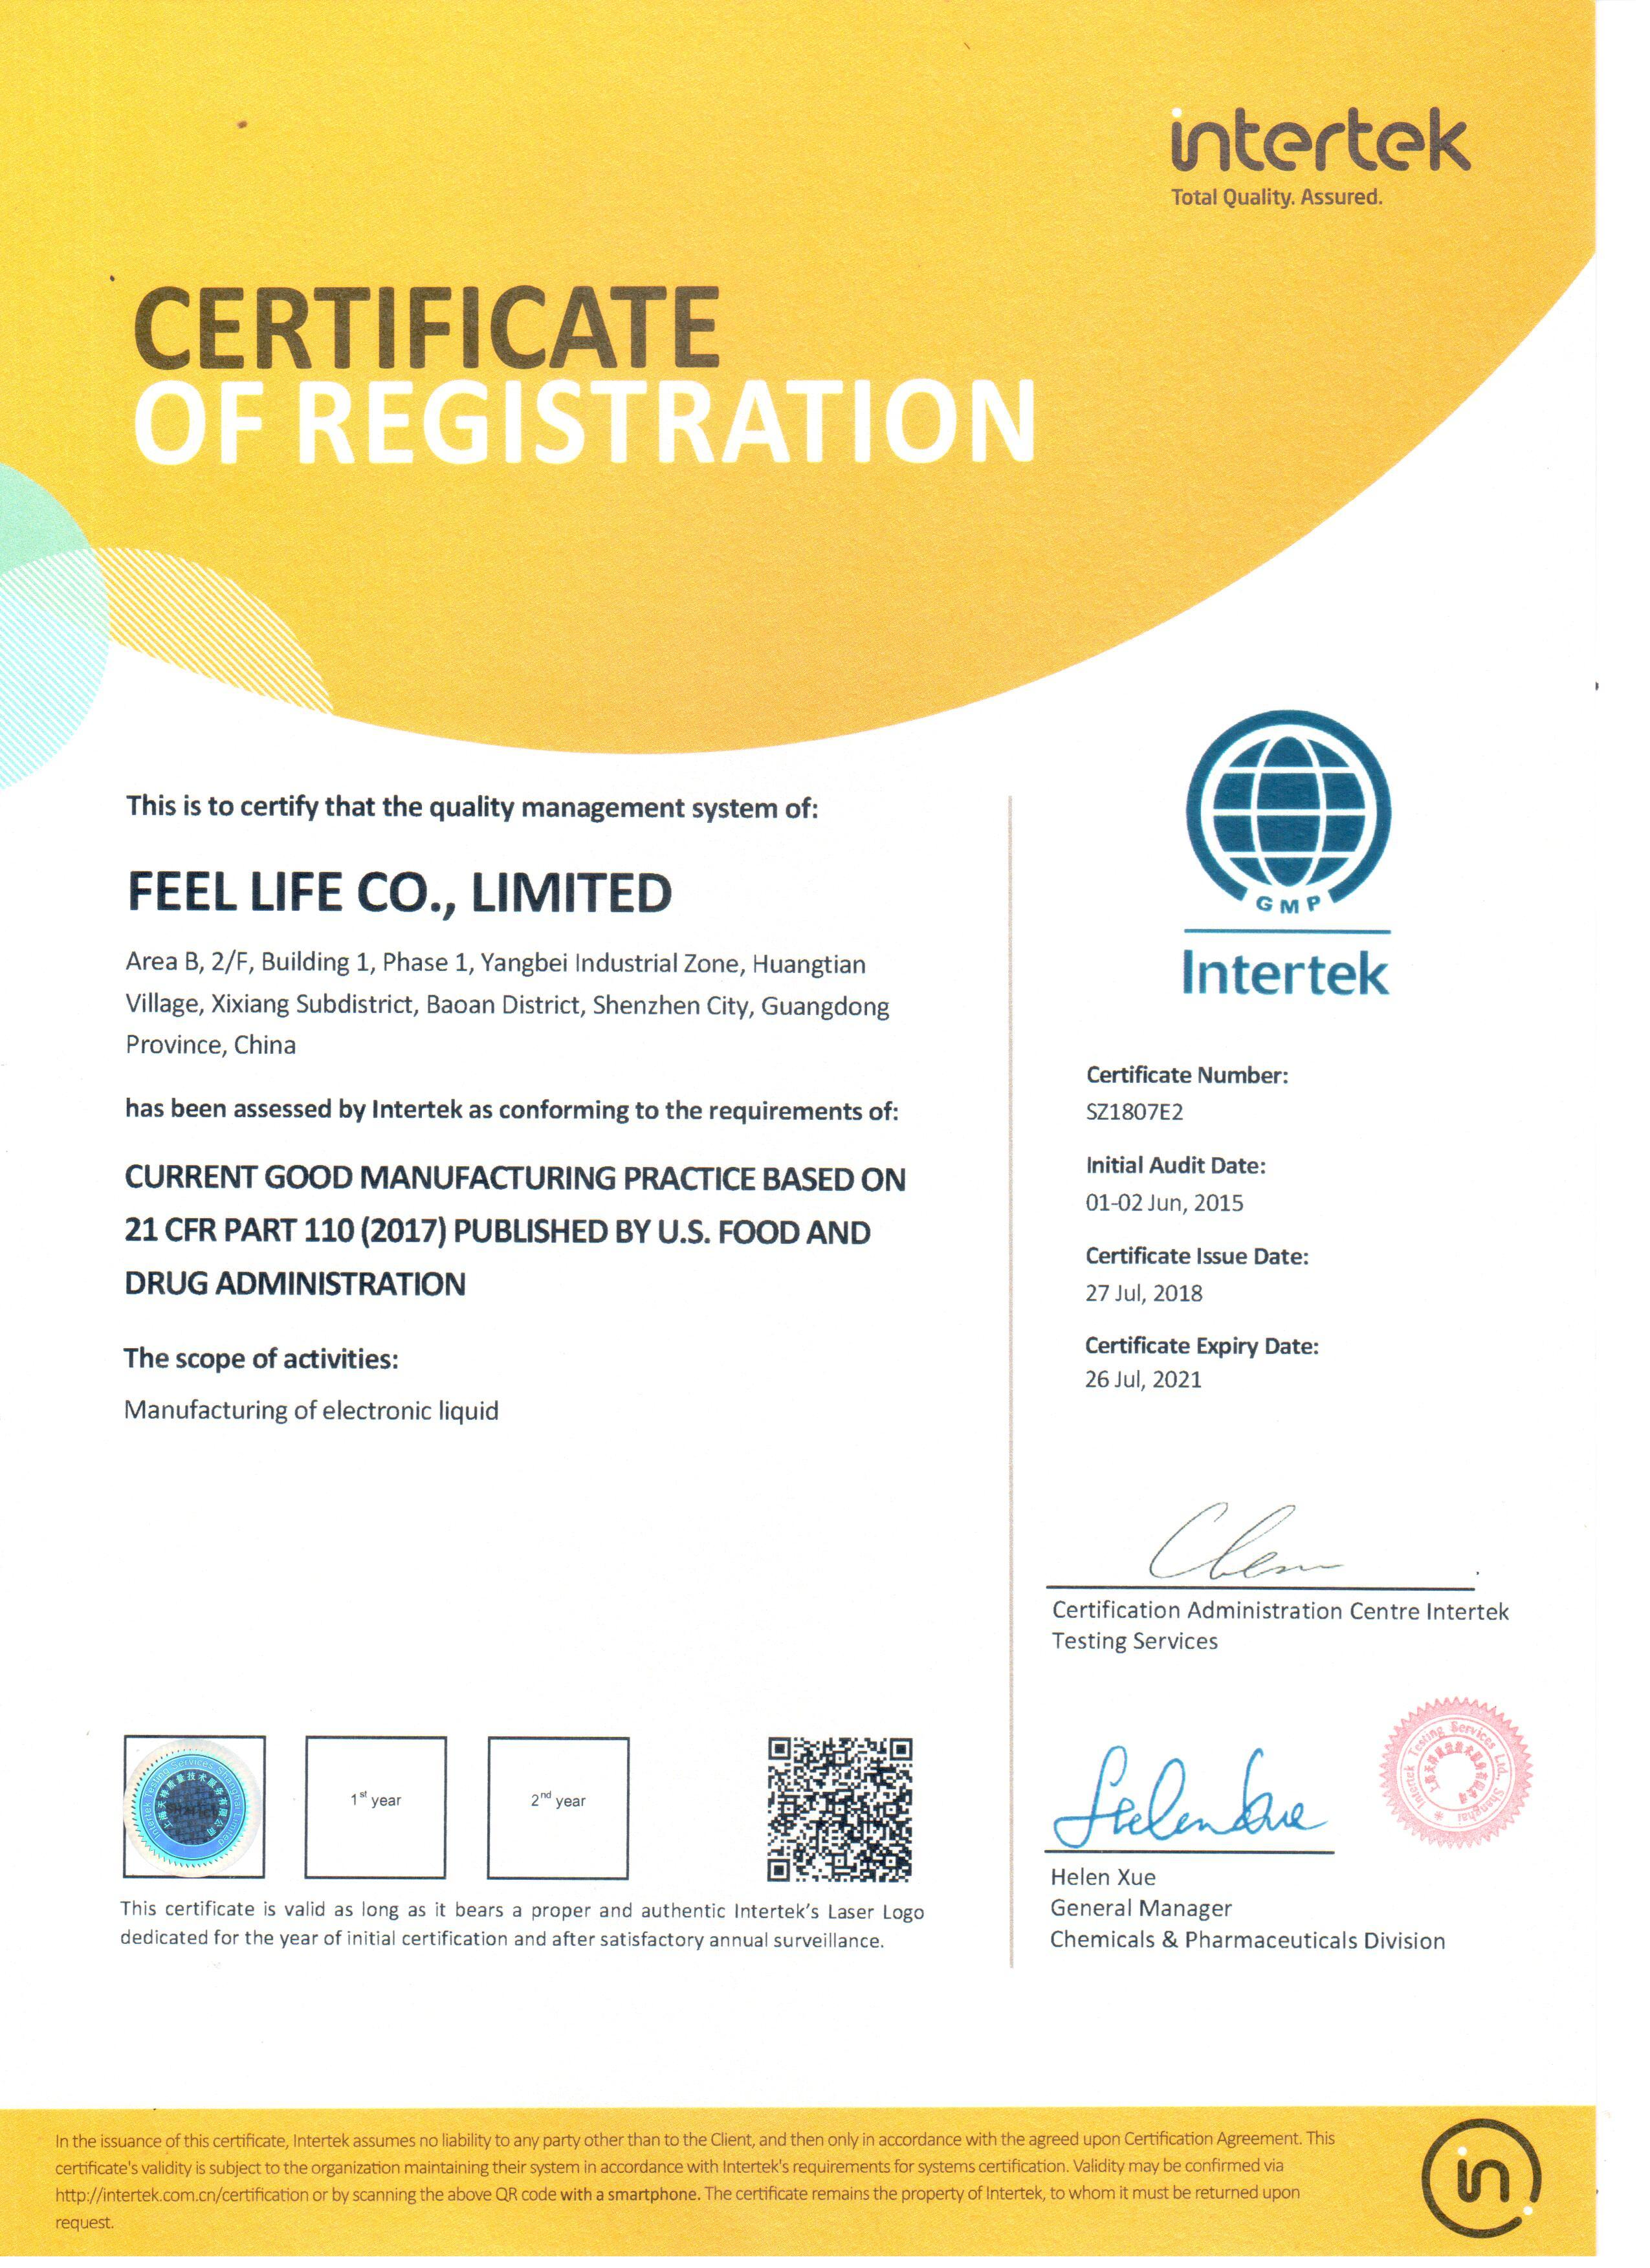 FEELLIFE quality management system